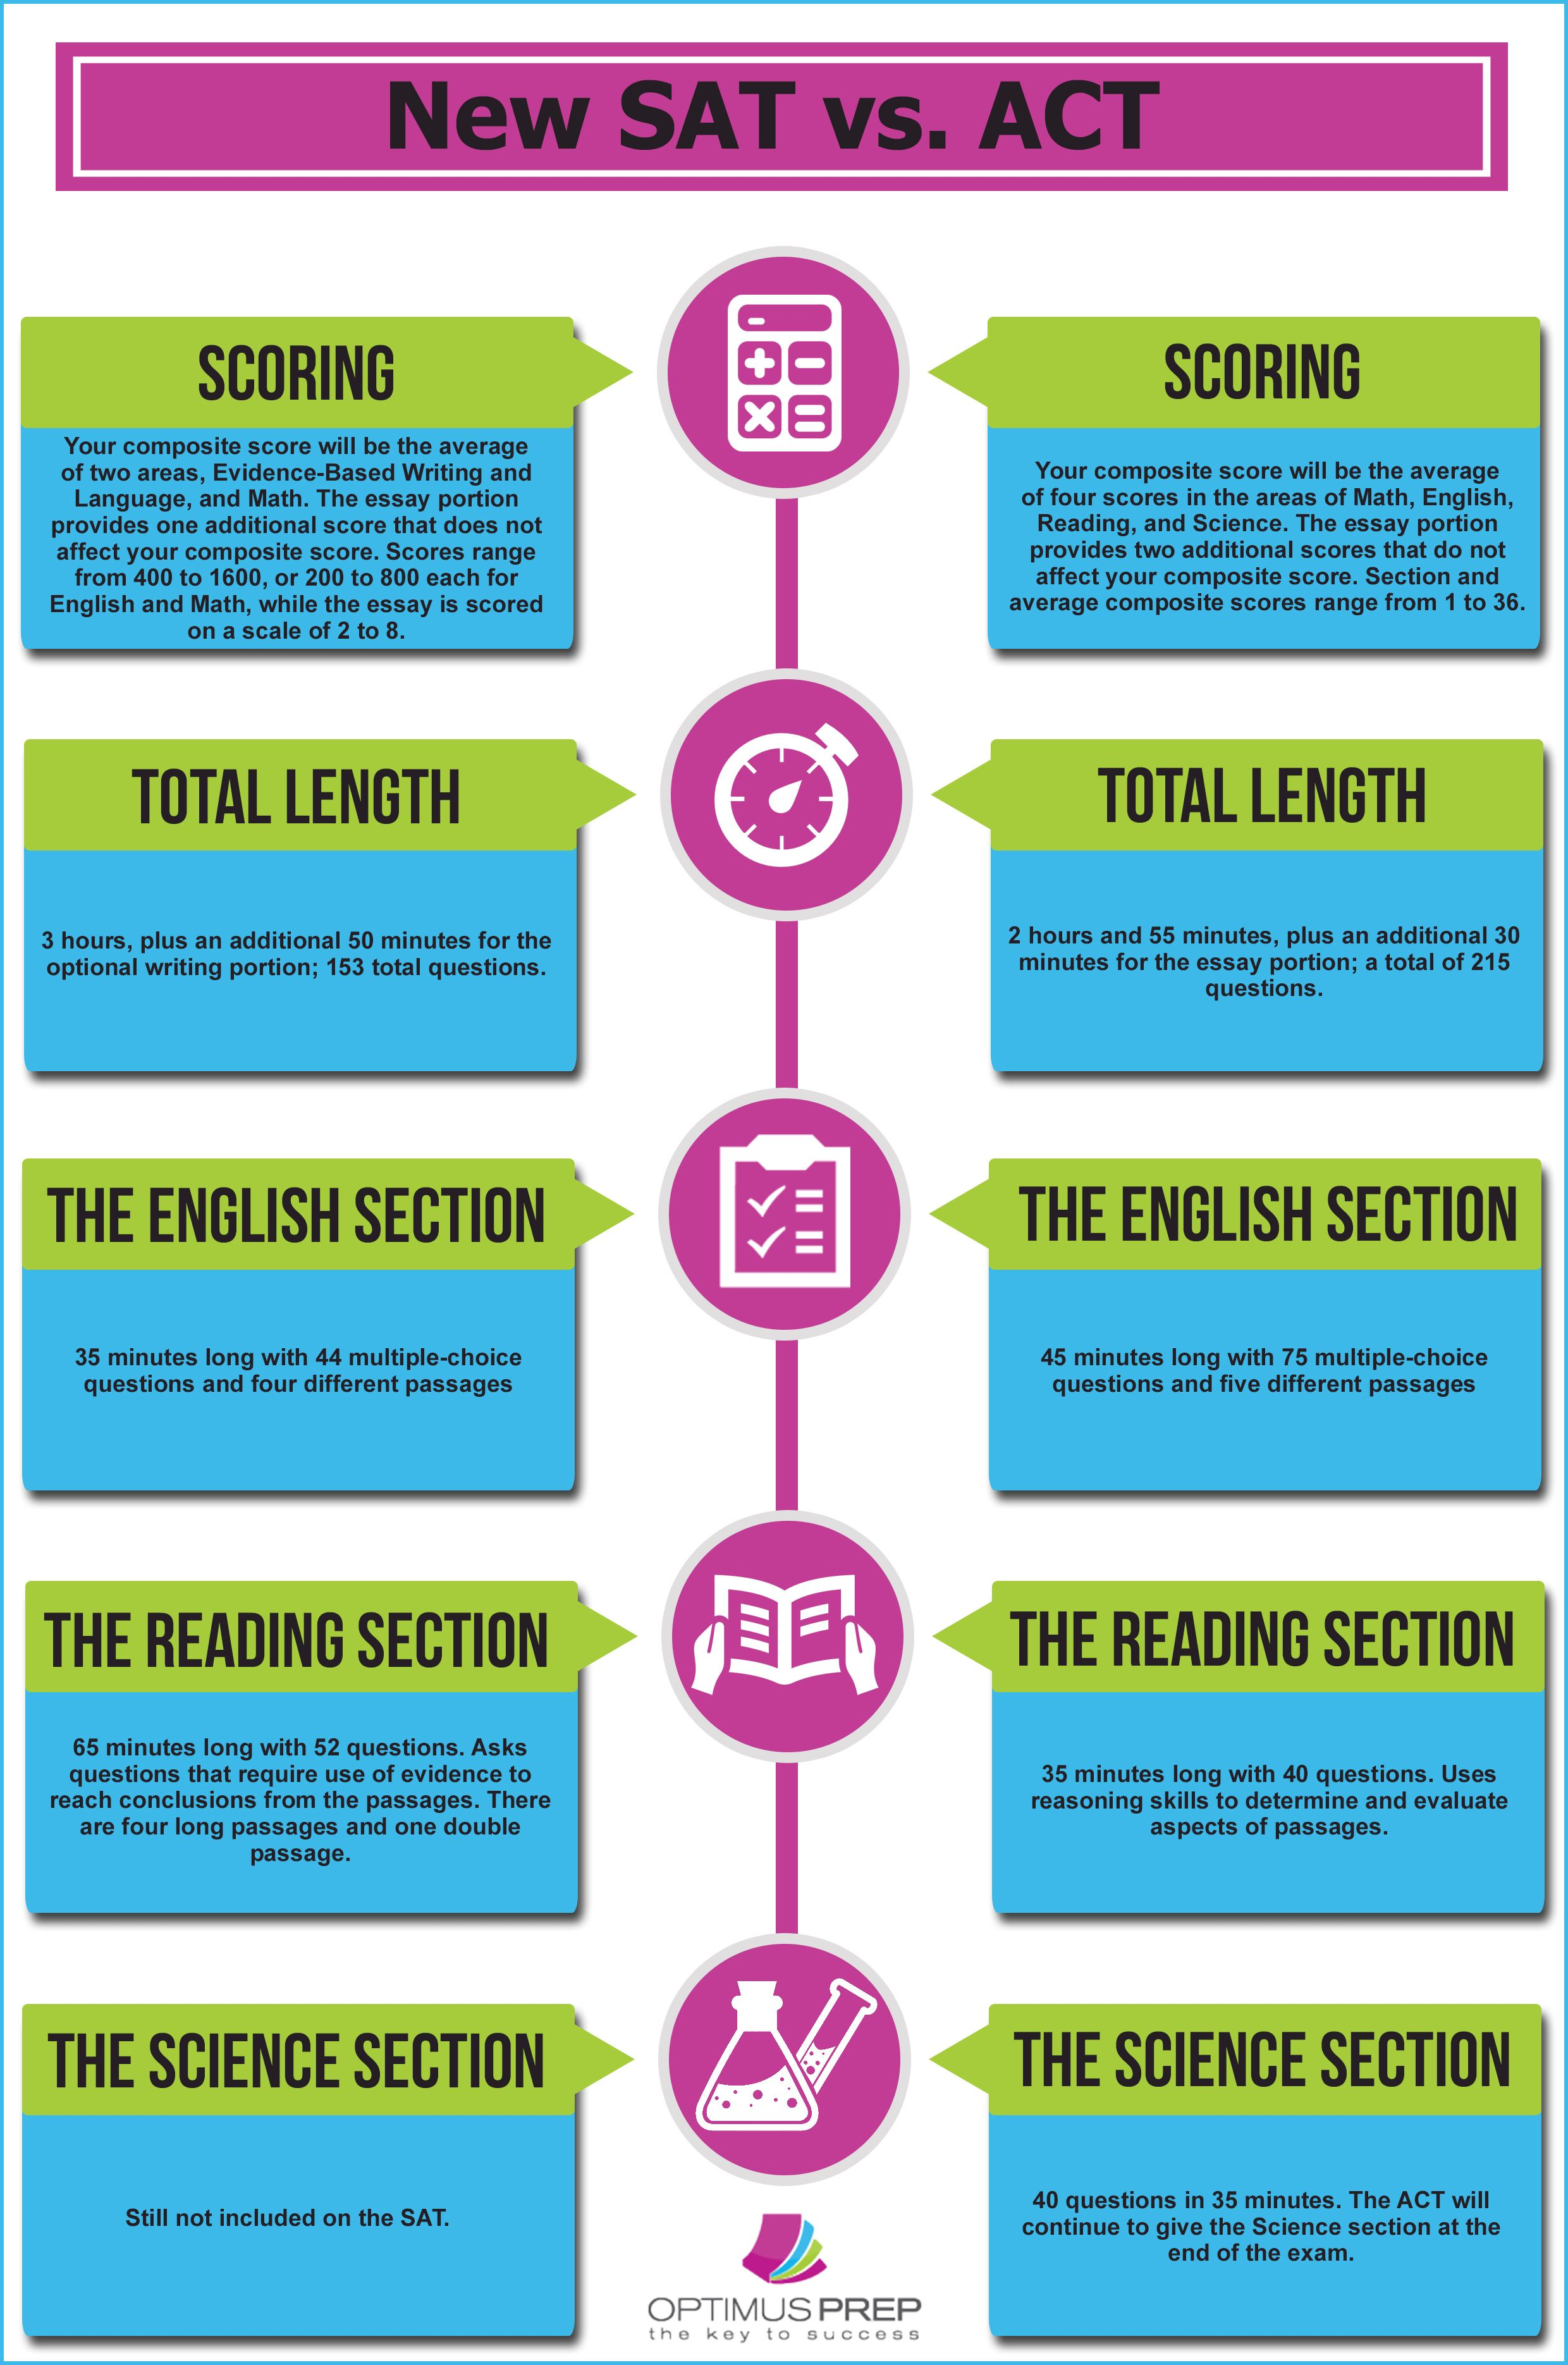 This Infographic Compares The New Sat Test Format Vs The Act Visit Optimus Prep Sat